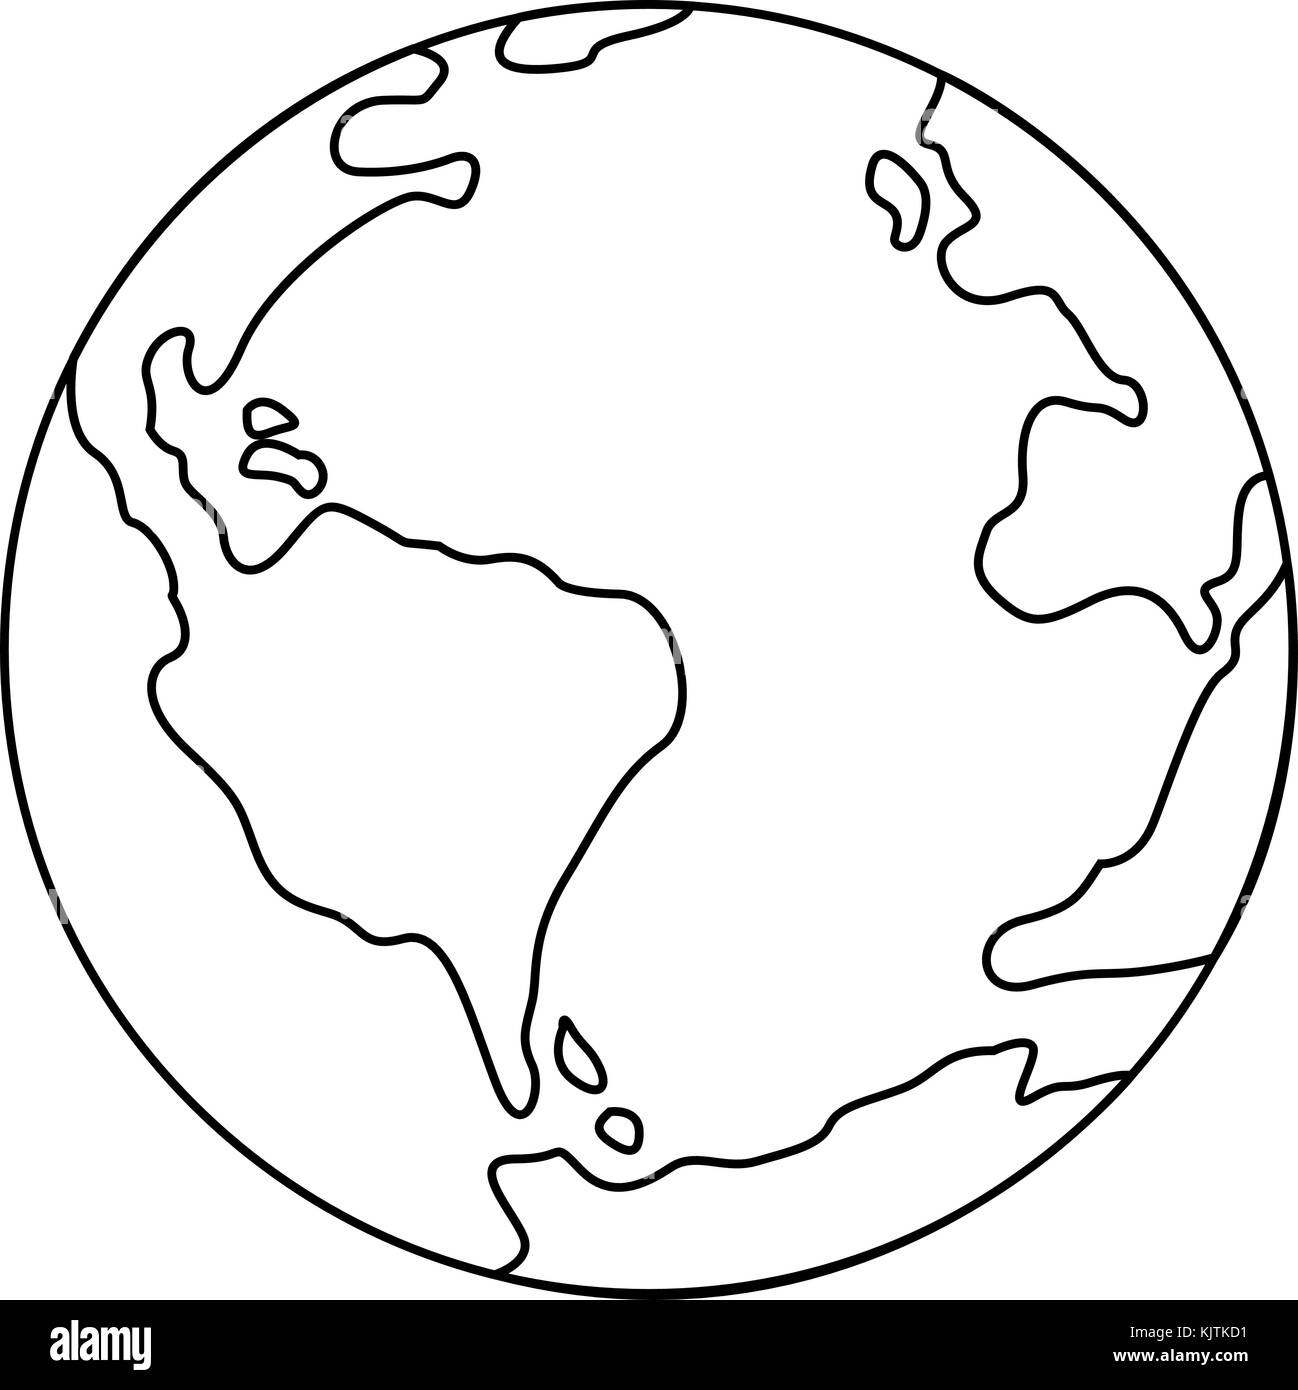 Line Drawing Earth : Line drawing world map stock photos